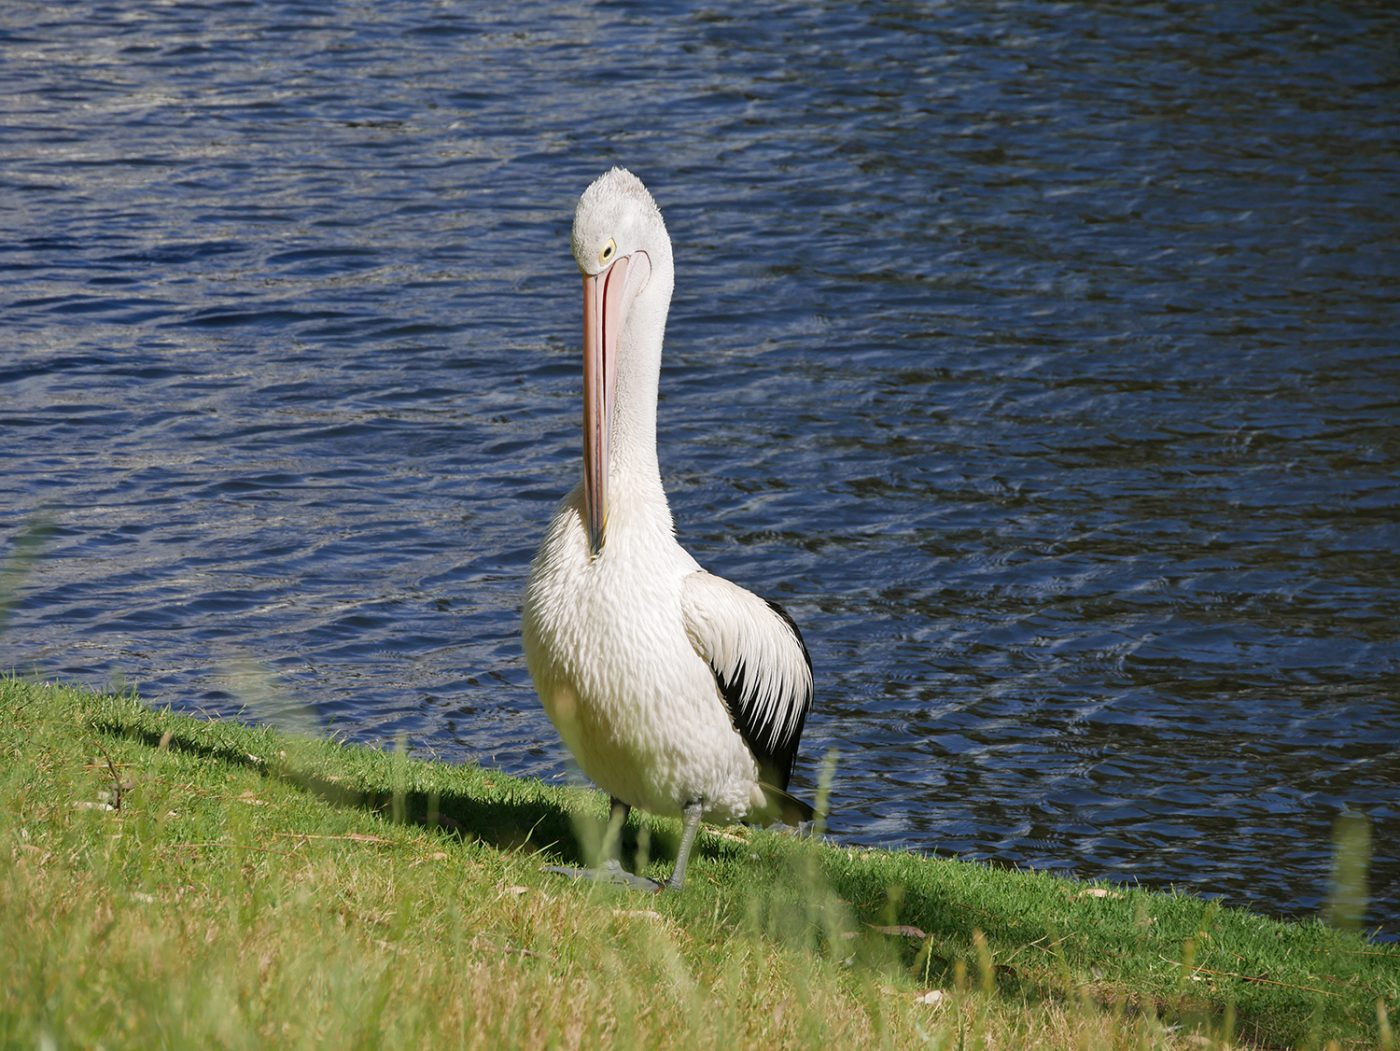 Pelicans sitting along the river